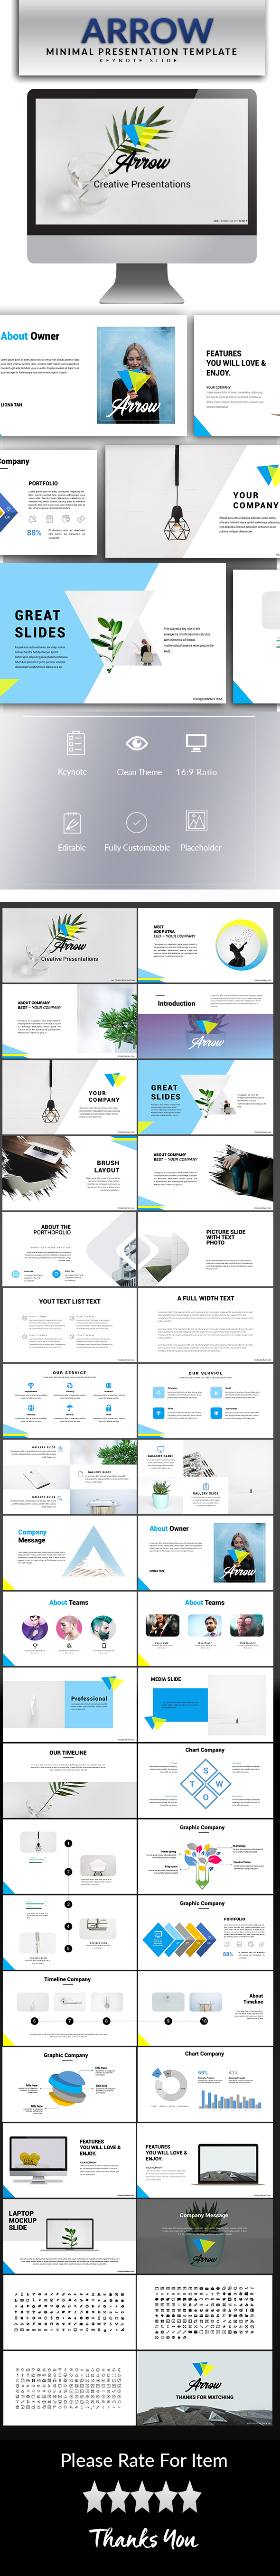 Arrow Keynote Template - Keynote Templates Presentation Templates